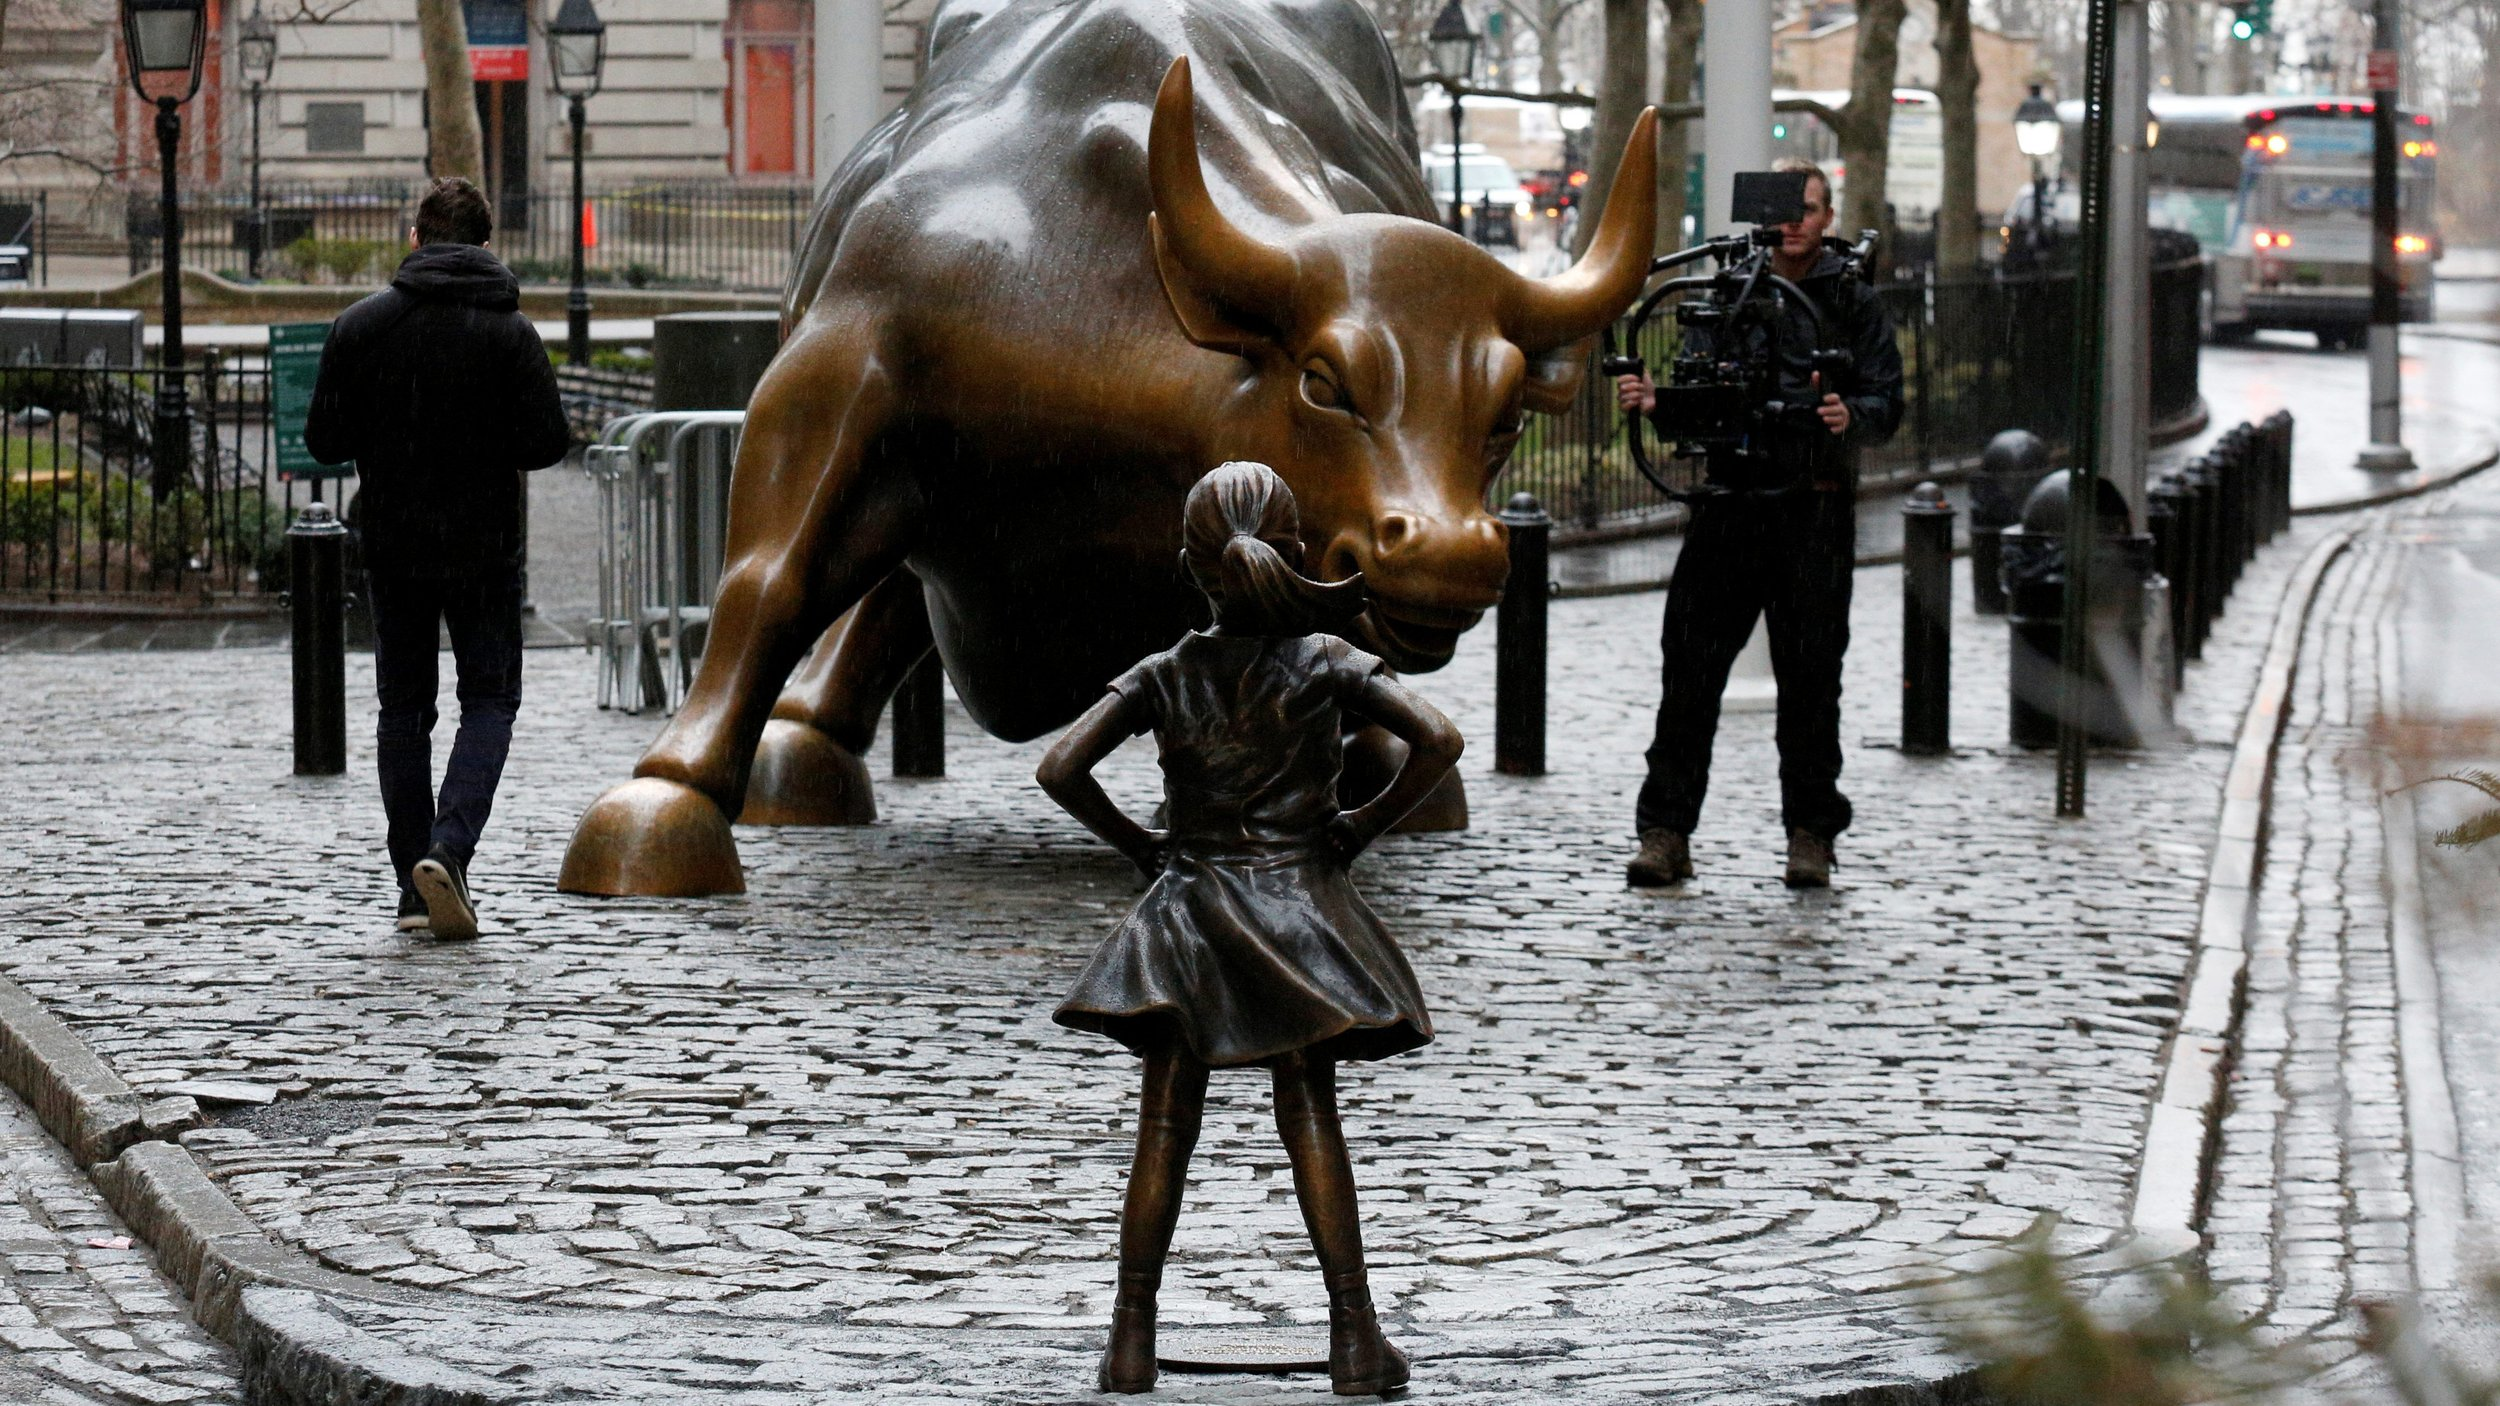 The veteran of Wall St, the Charging Bull being stared down by a newcomer - the Fearless Girl,  photo from Quartz